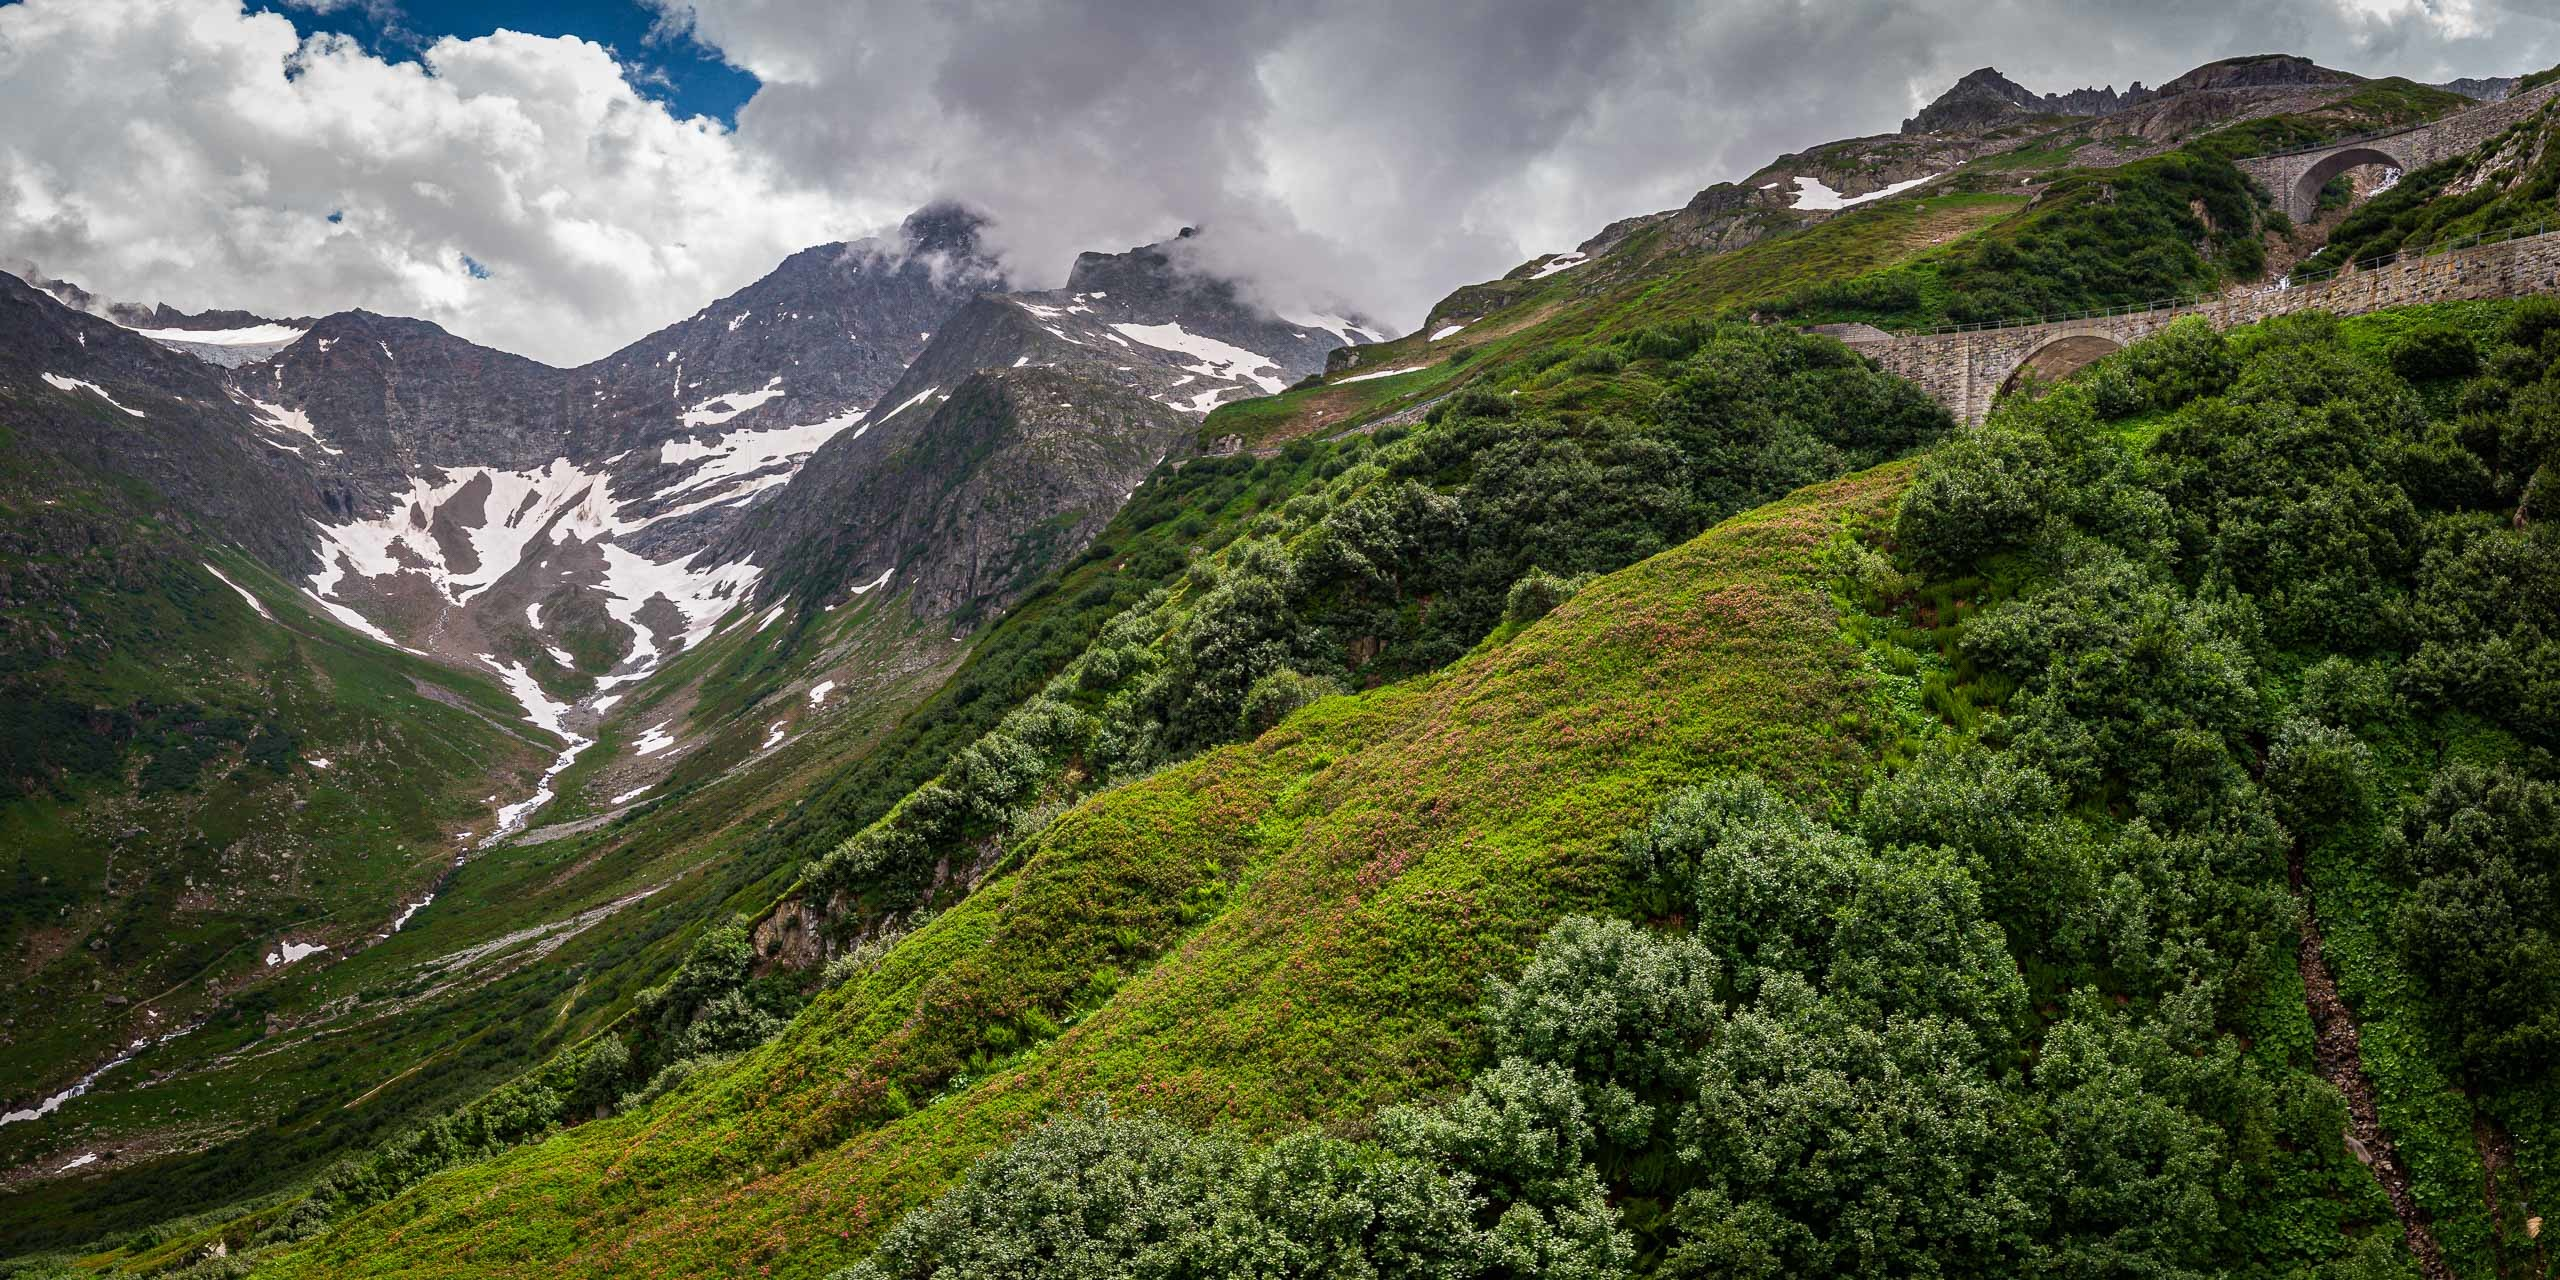 Drone photograph of the Alpenrose in bloom next to the Susten Pass road.